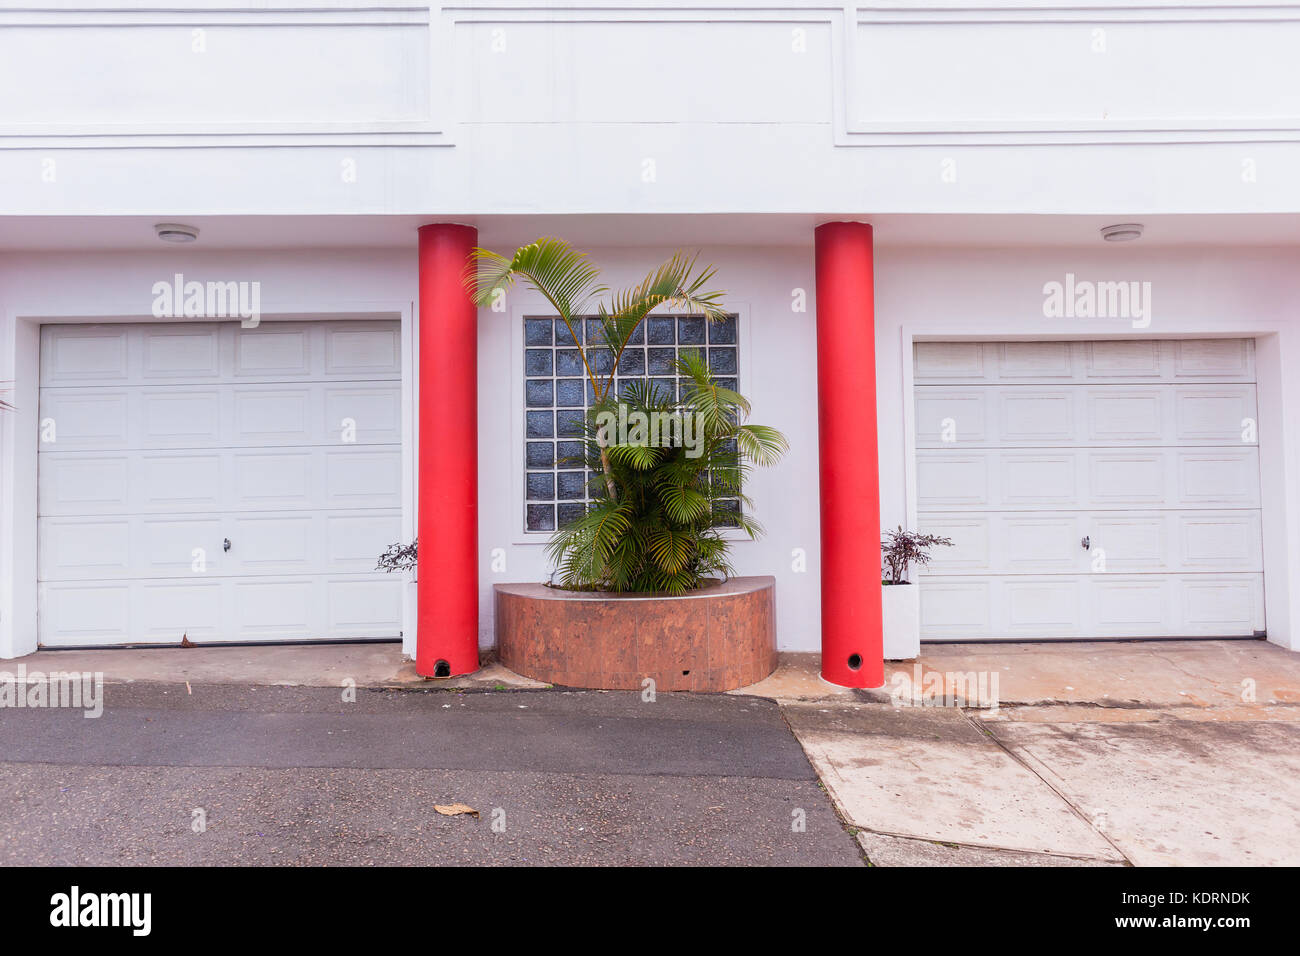 Red garage doors stock photos red garage doors stock images alamy double garage doors white with red columns outside road entrance for vehicles stock image rubansaba